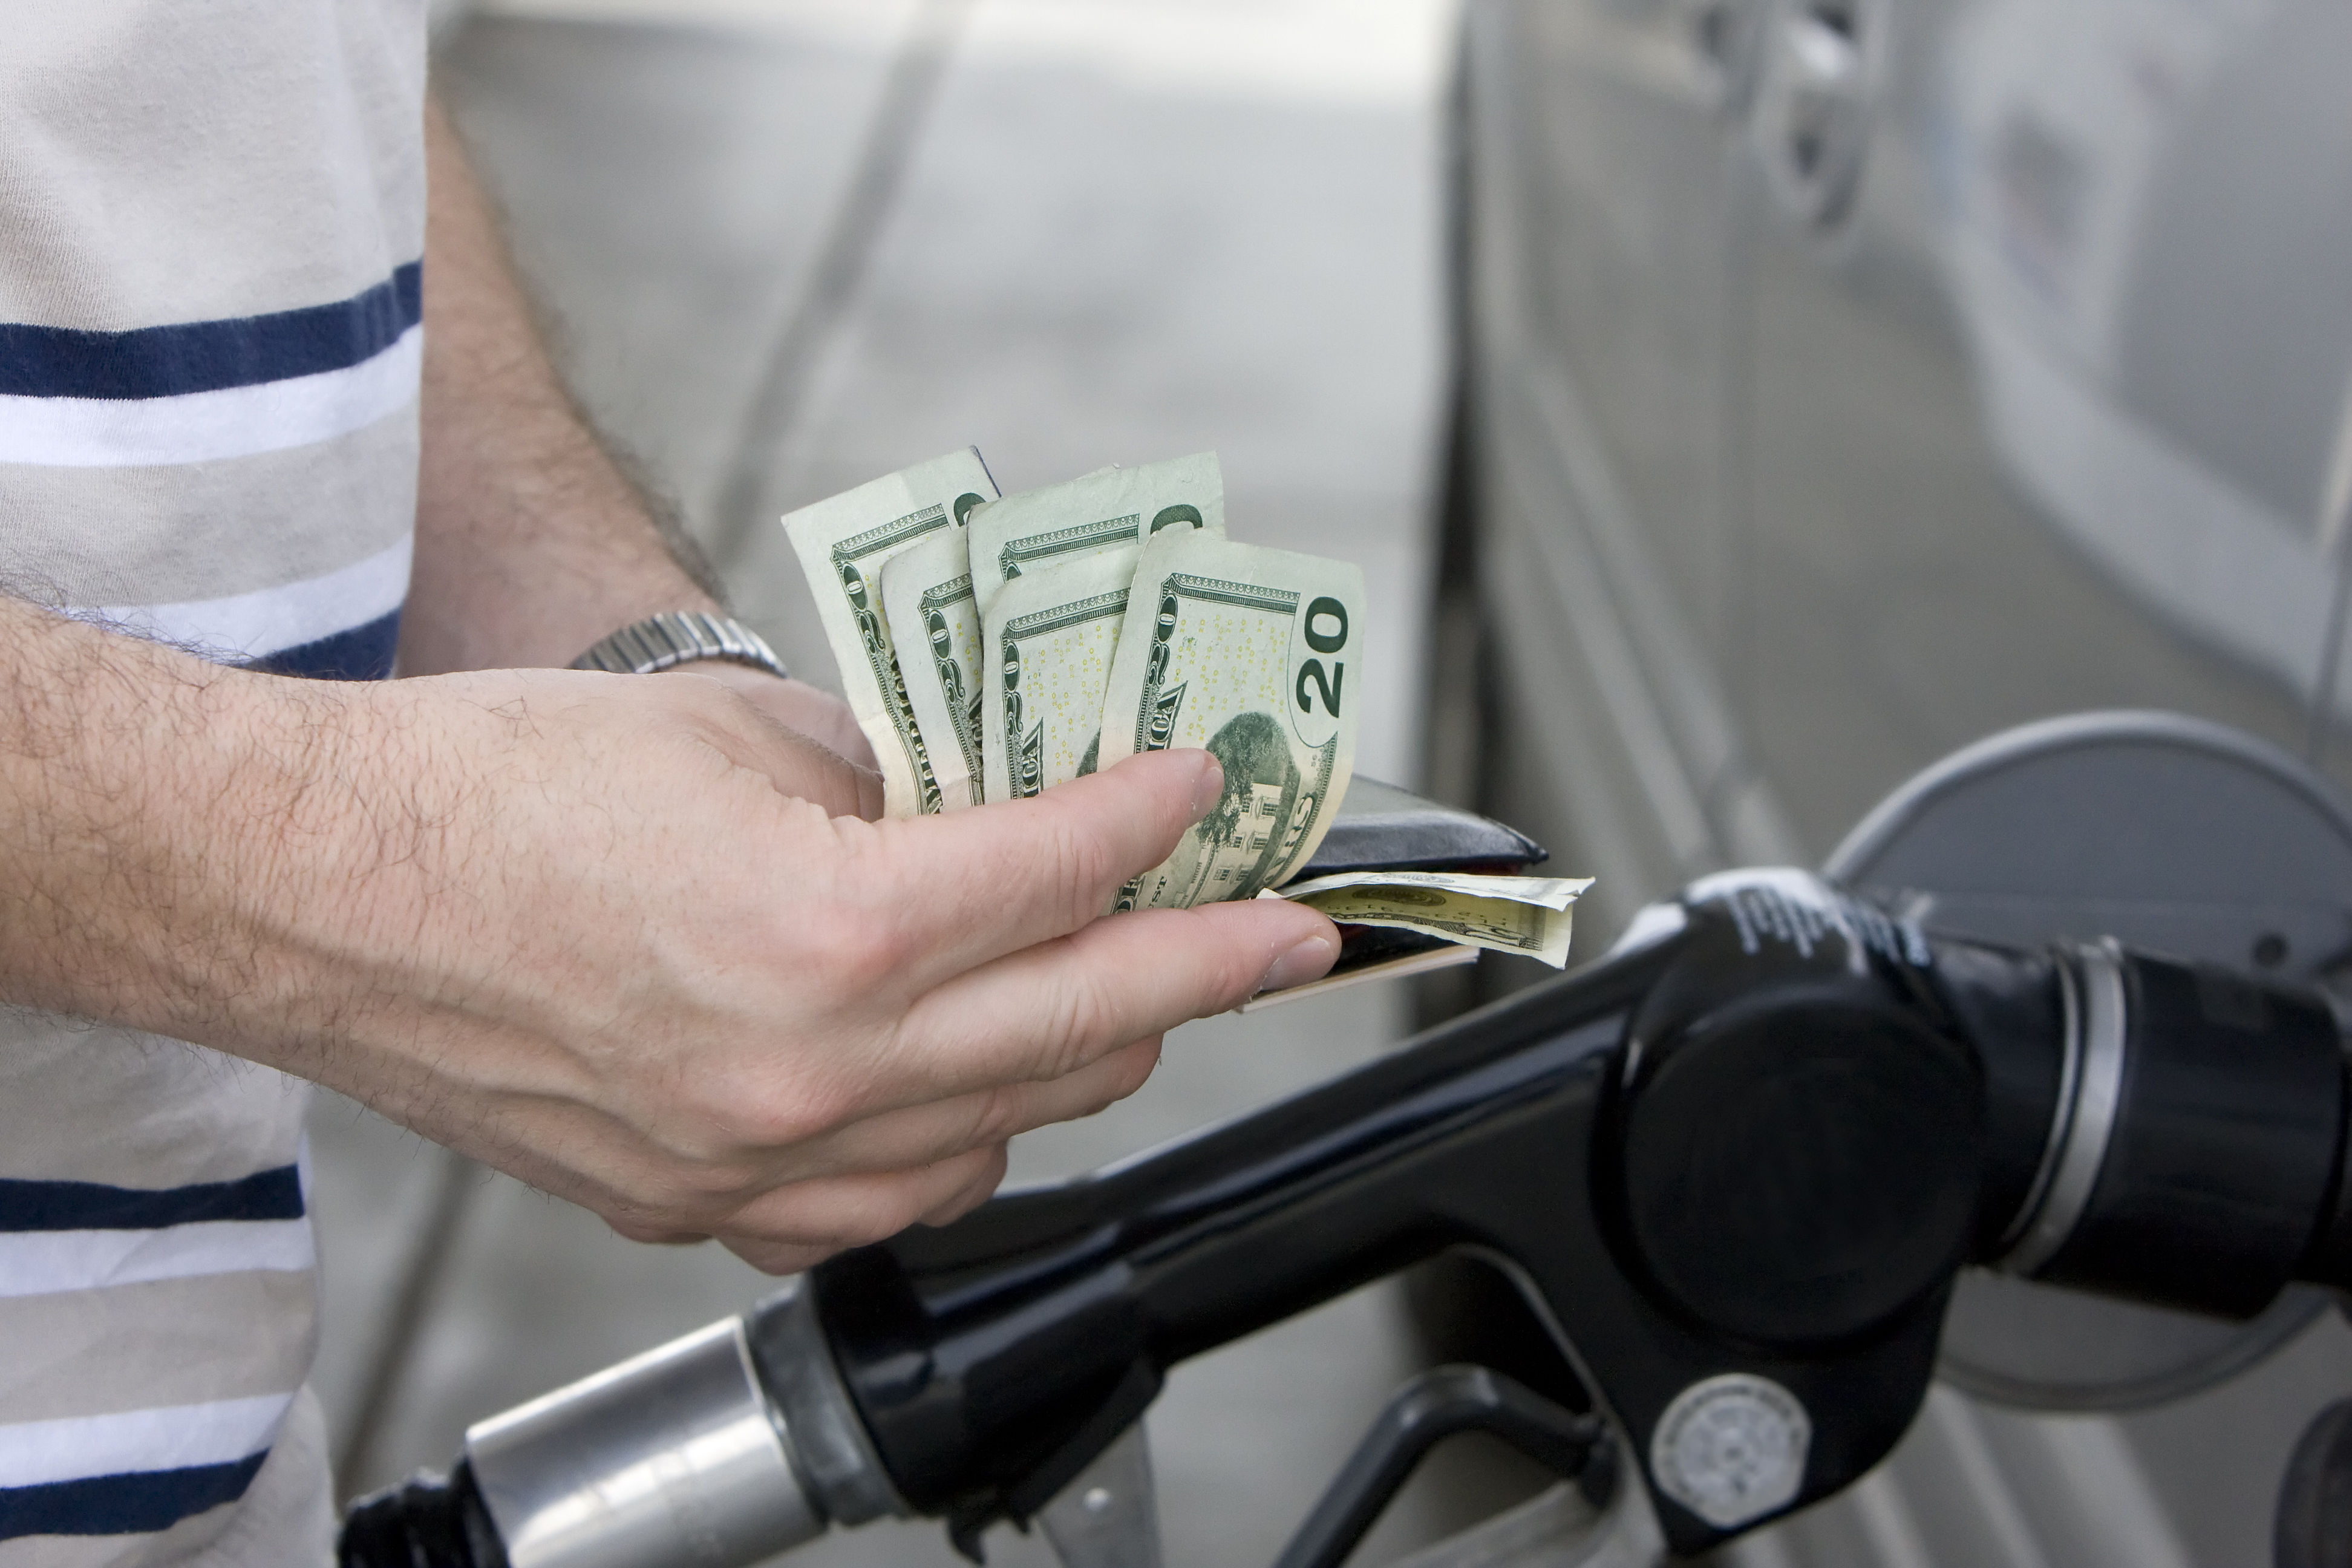 Fill up on This Day of the Week to Save the Most Money on Gas